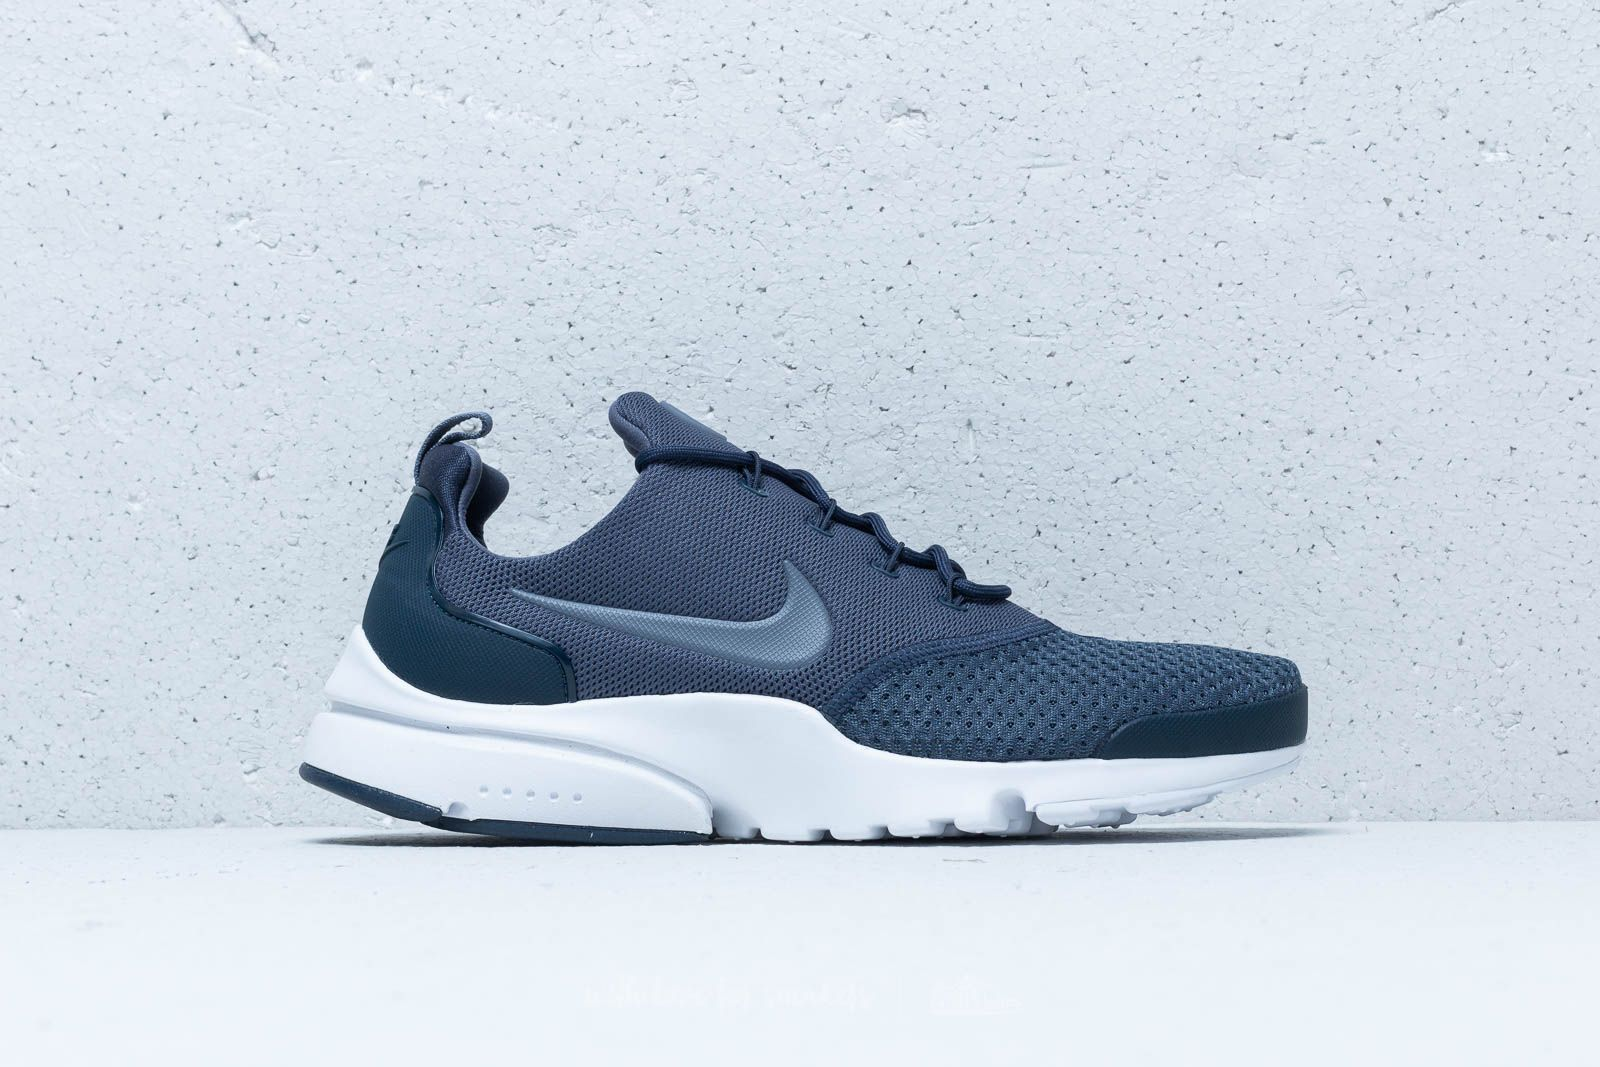 hot sale online f400f d3f5e Nike Presto Fly SE Thunder Blue  Light Carbon at a great price £95 buy